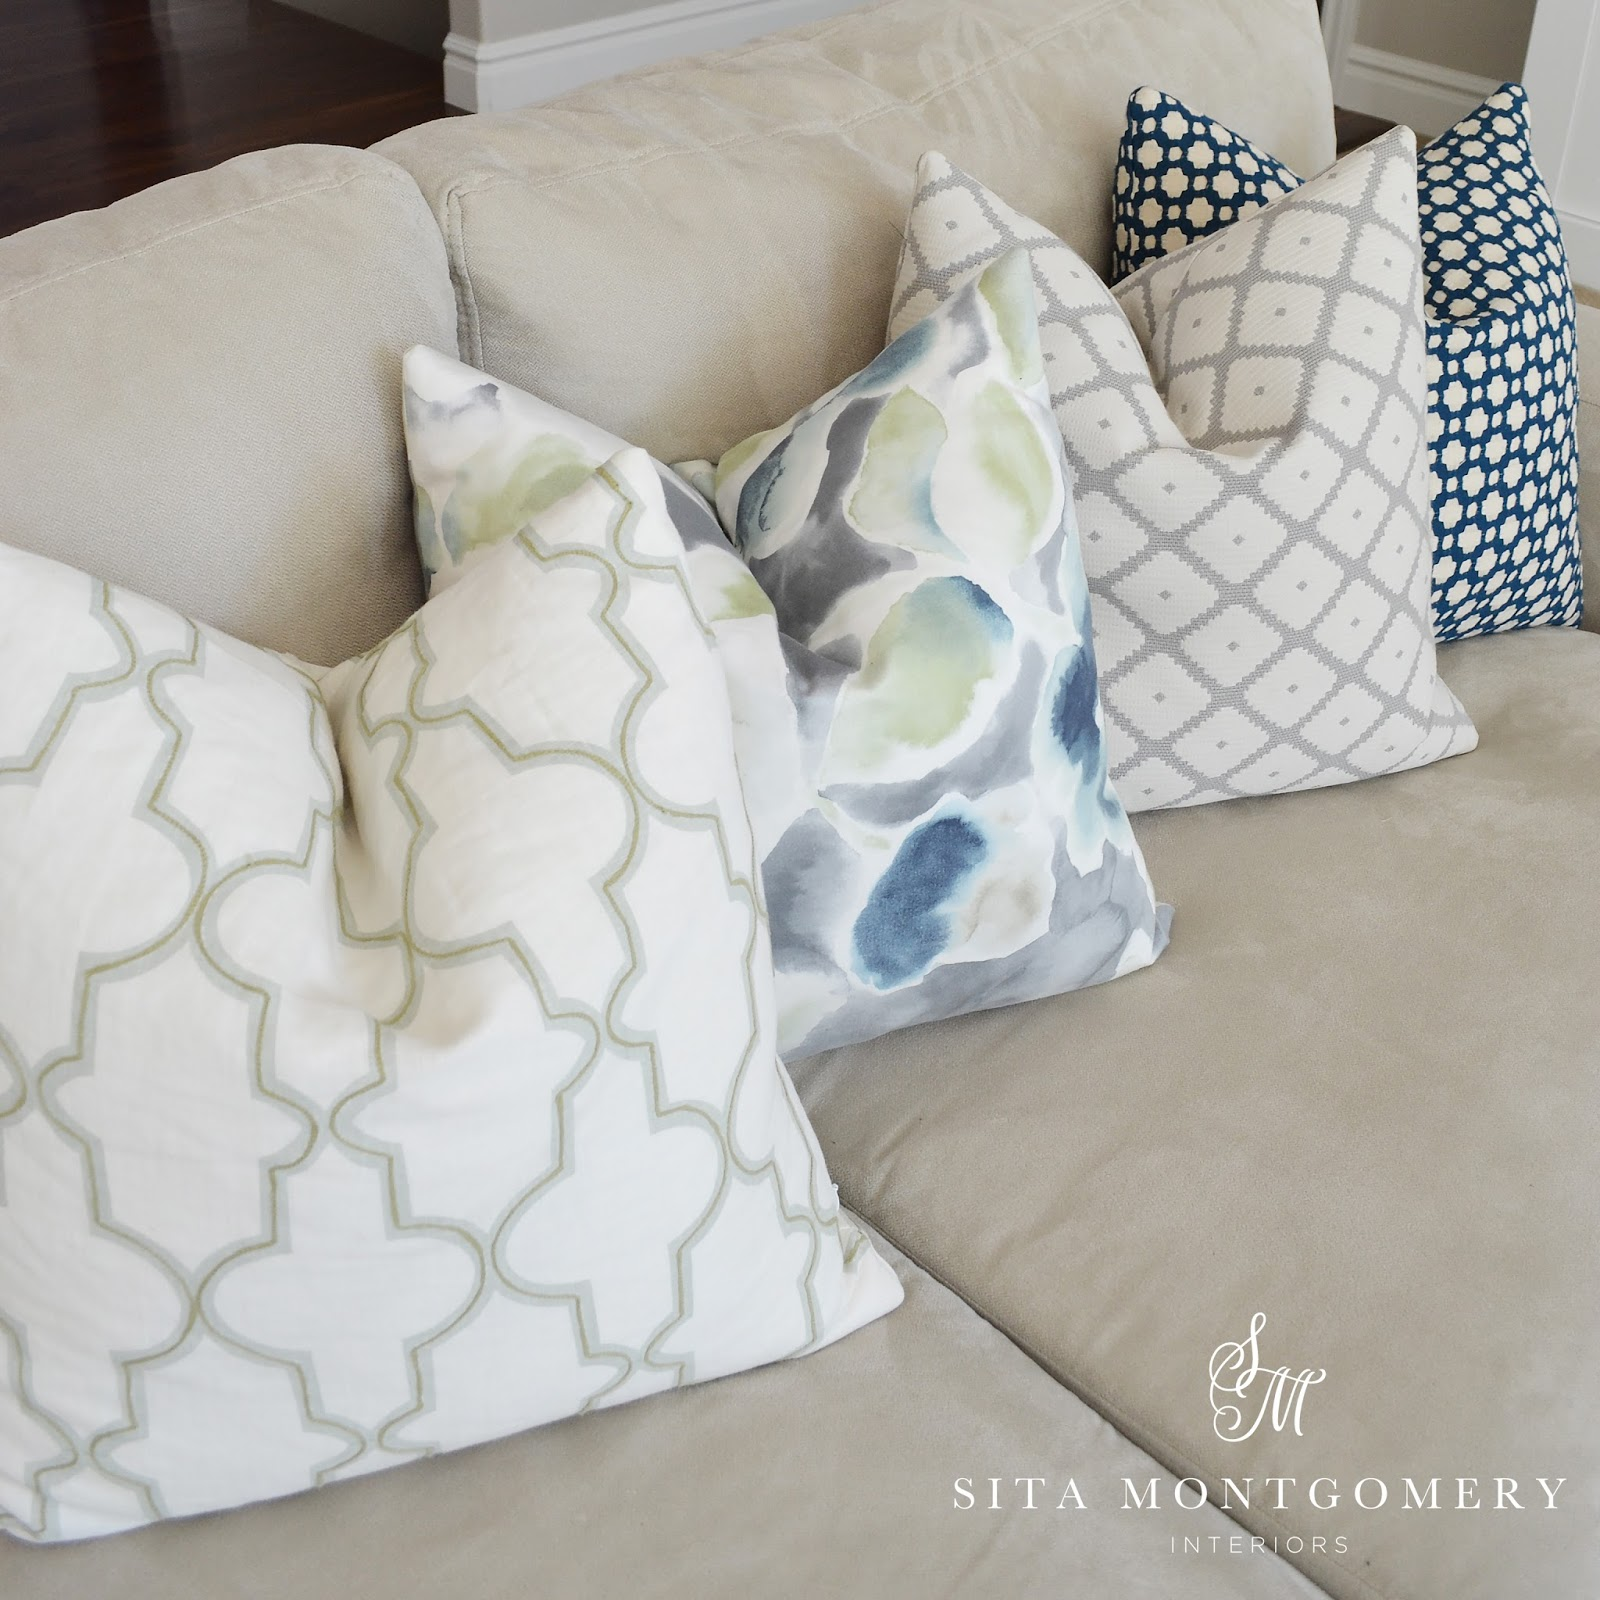 Sita Montgomery Interiors Project Reveal: The Rigby